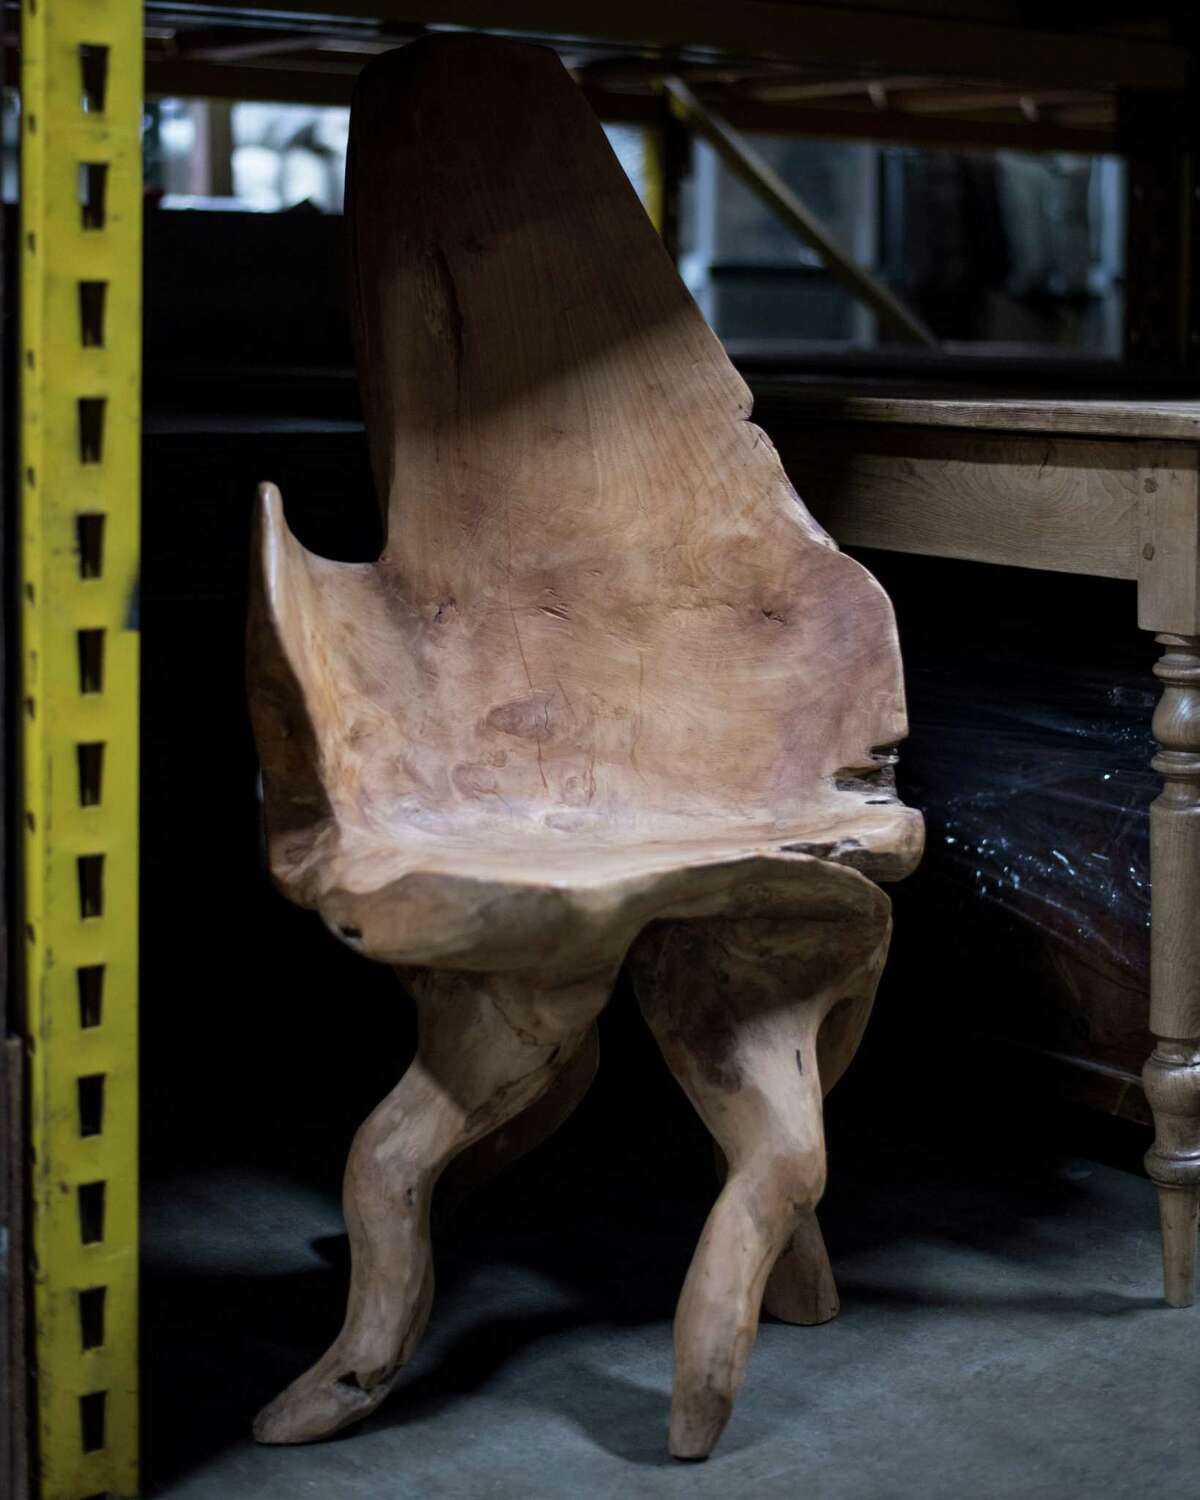 A unique chair at Rosichelli Design in Seattle on March 1, 2018.